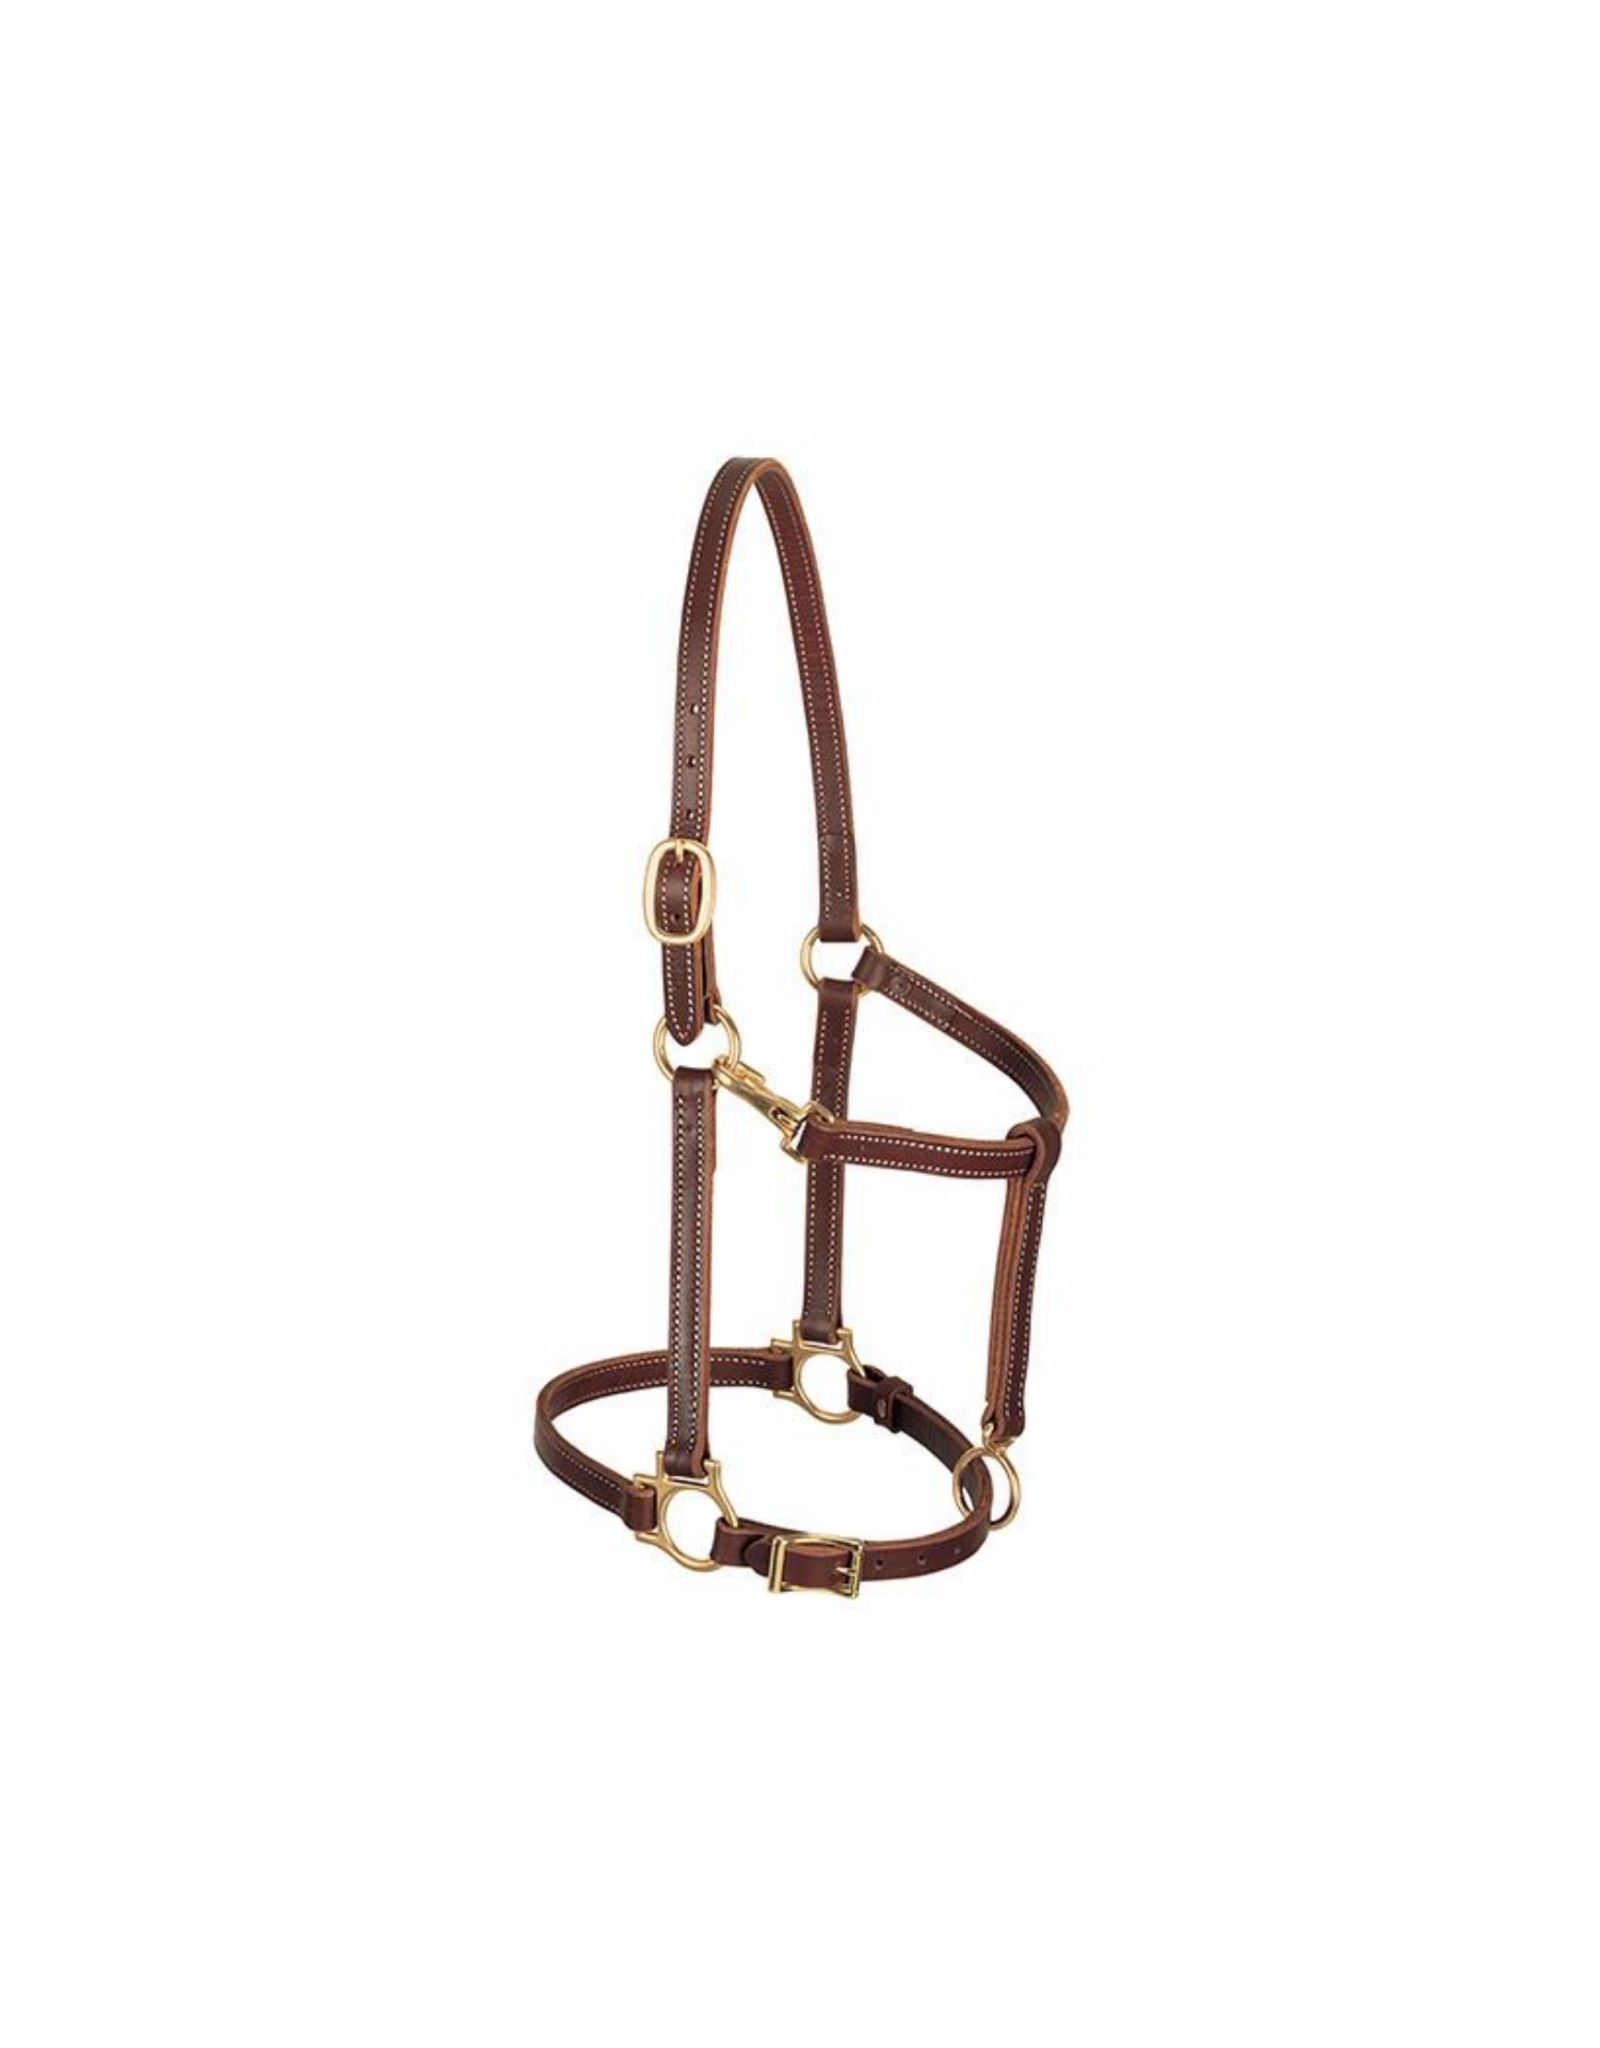 Leather Horse Track Halter